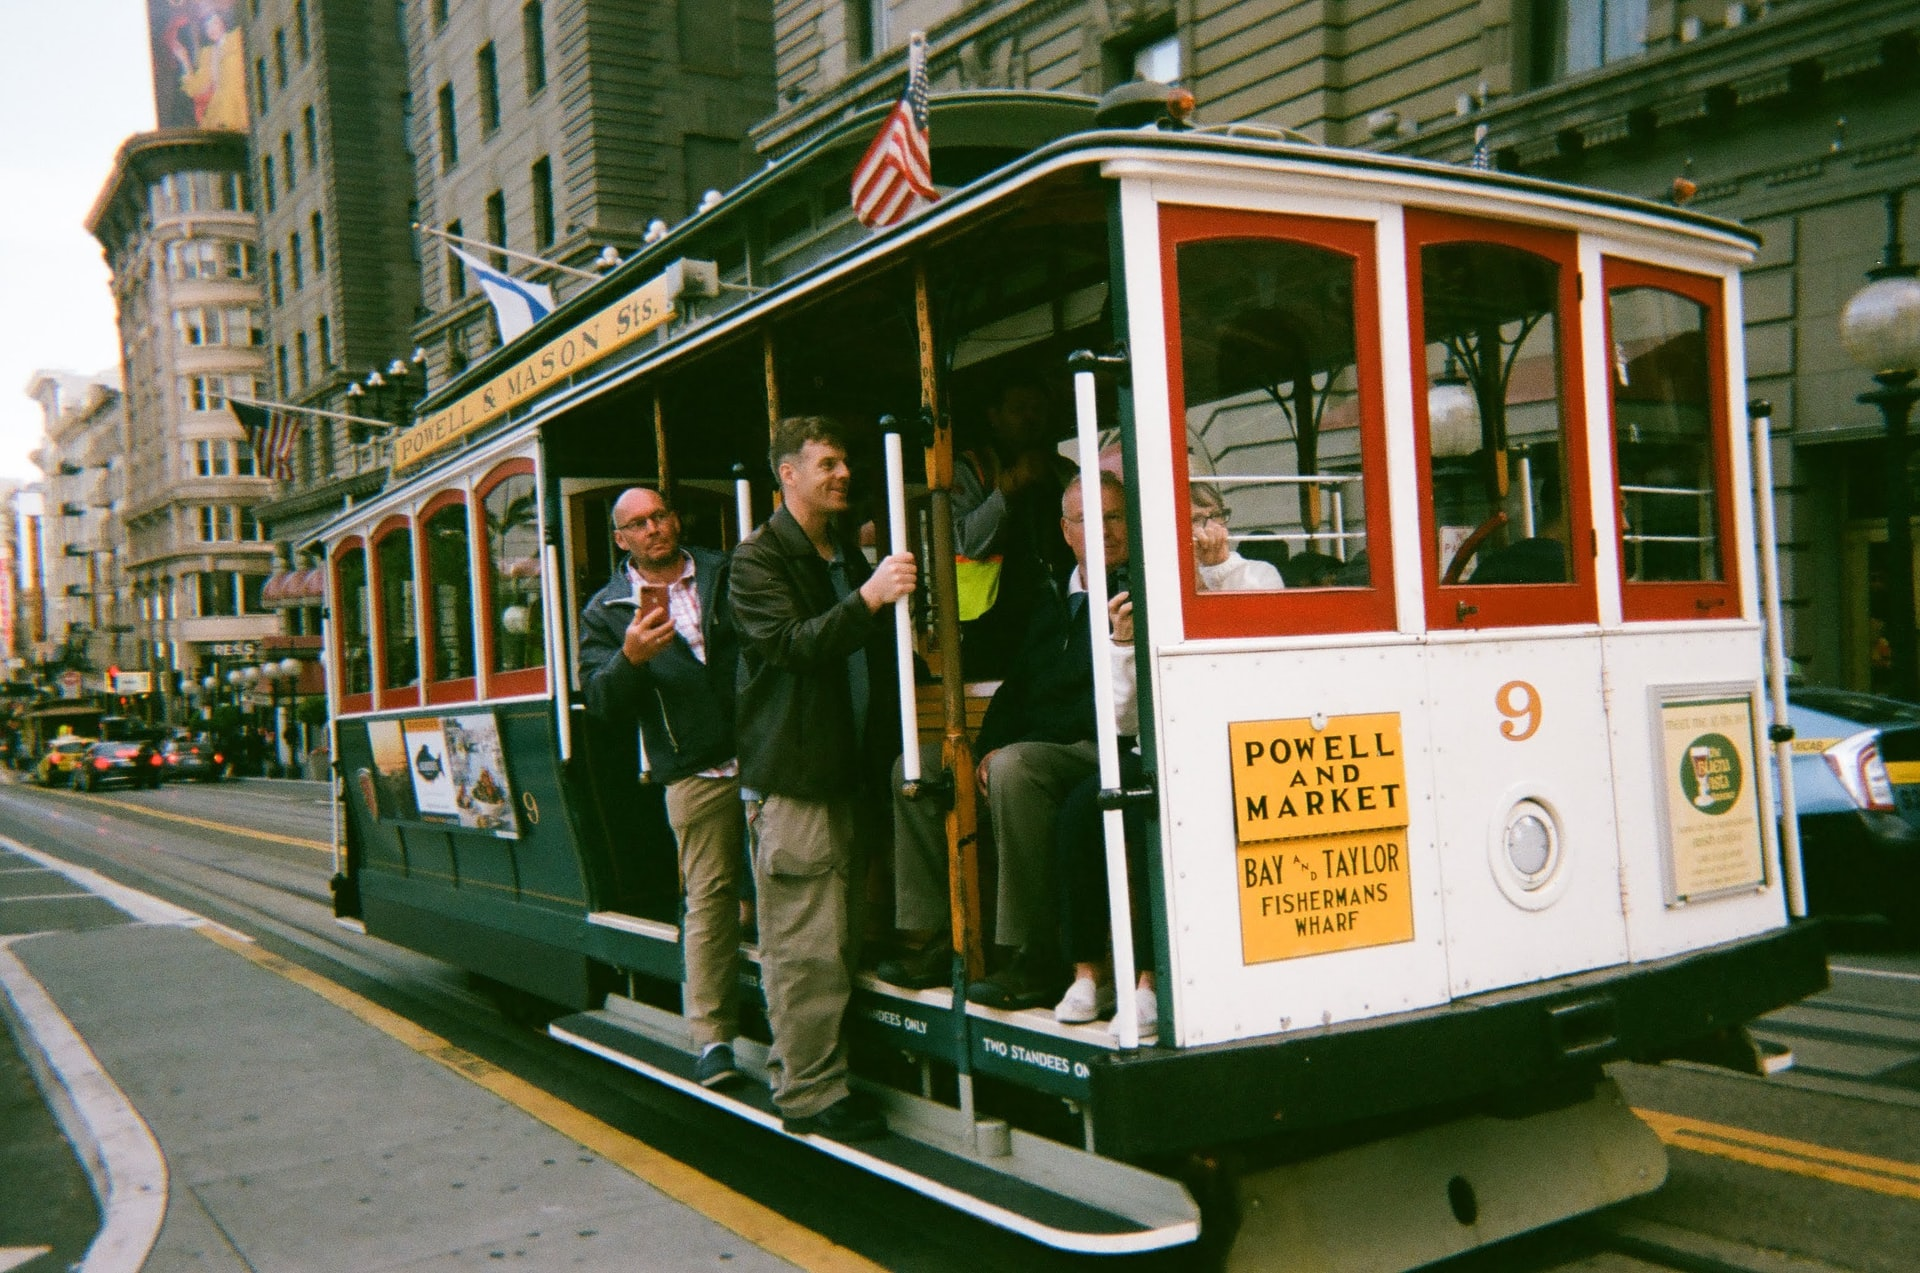 Cable Car at Powell and Market